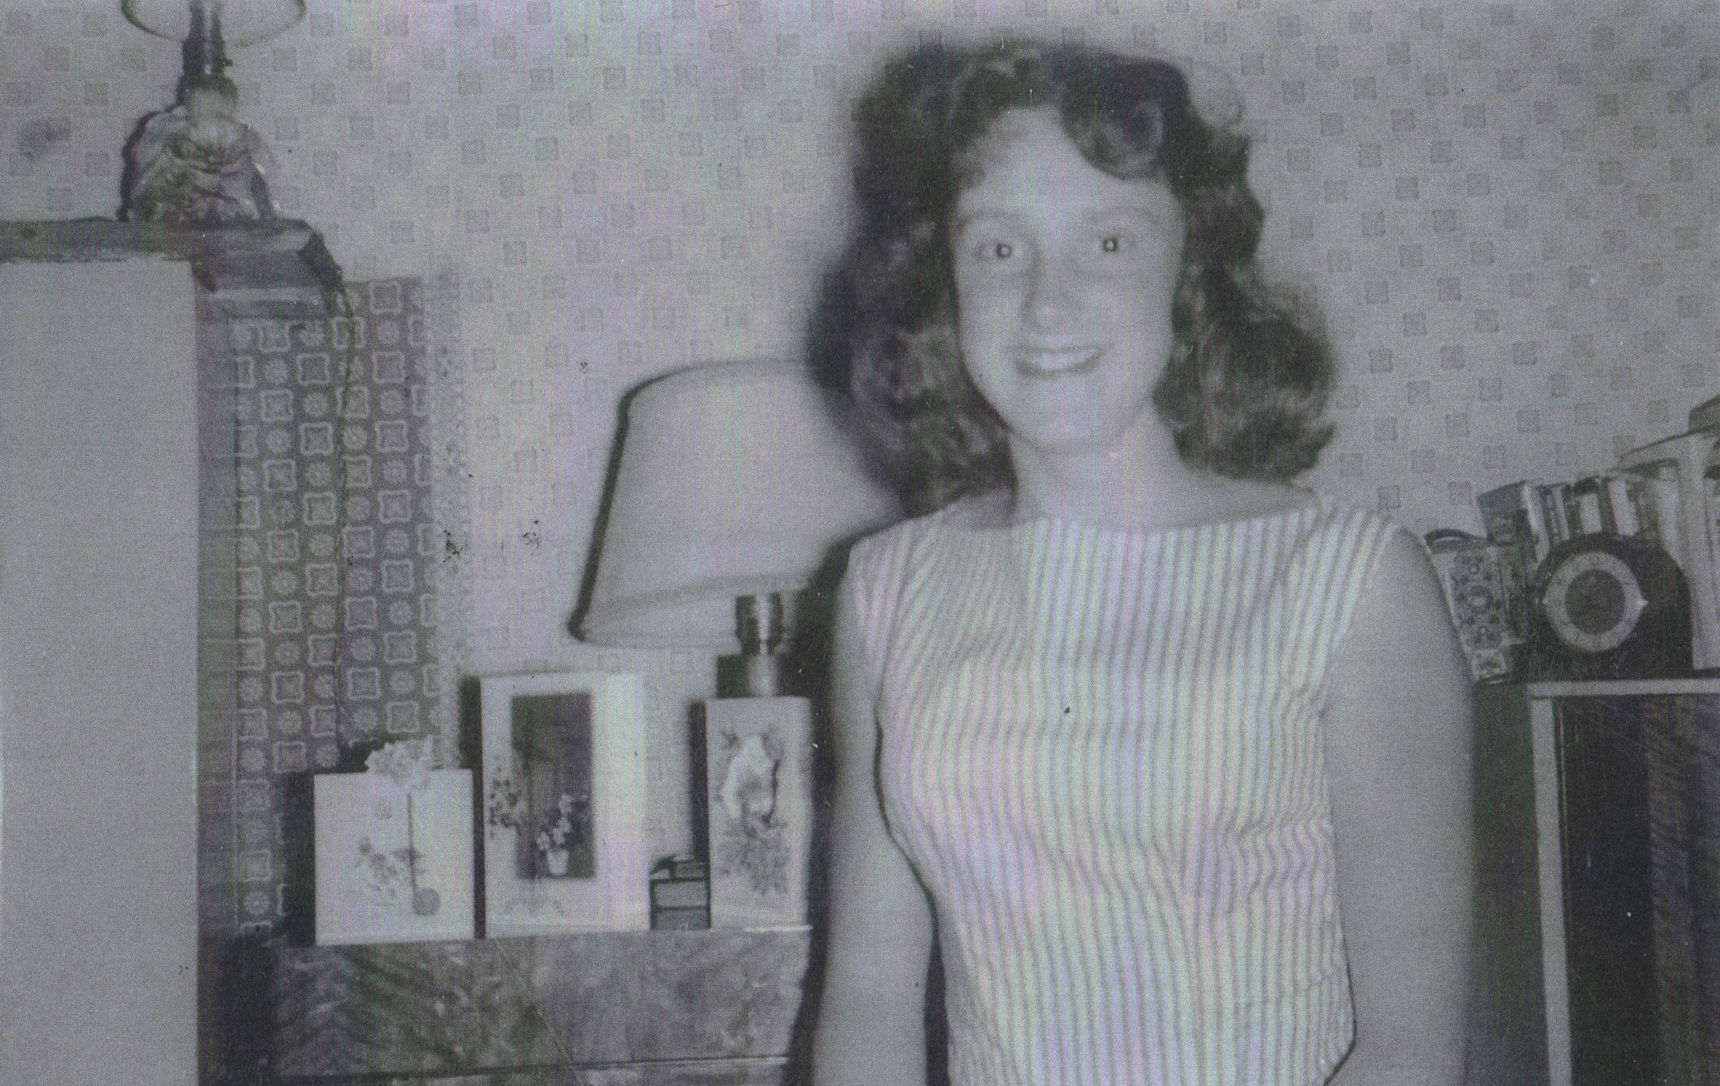 59 - Another picture of me in my Home on my 15th Birthday. You can see